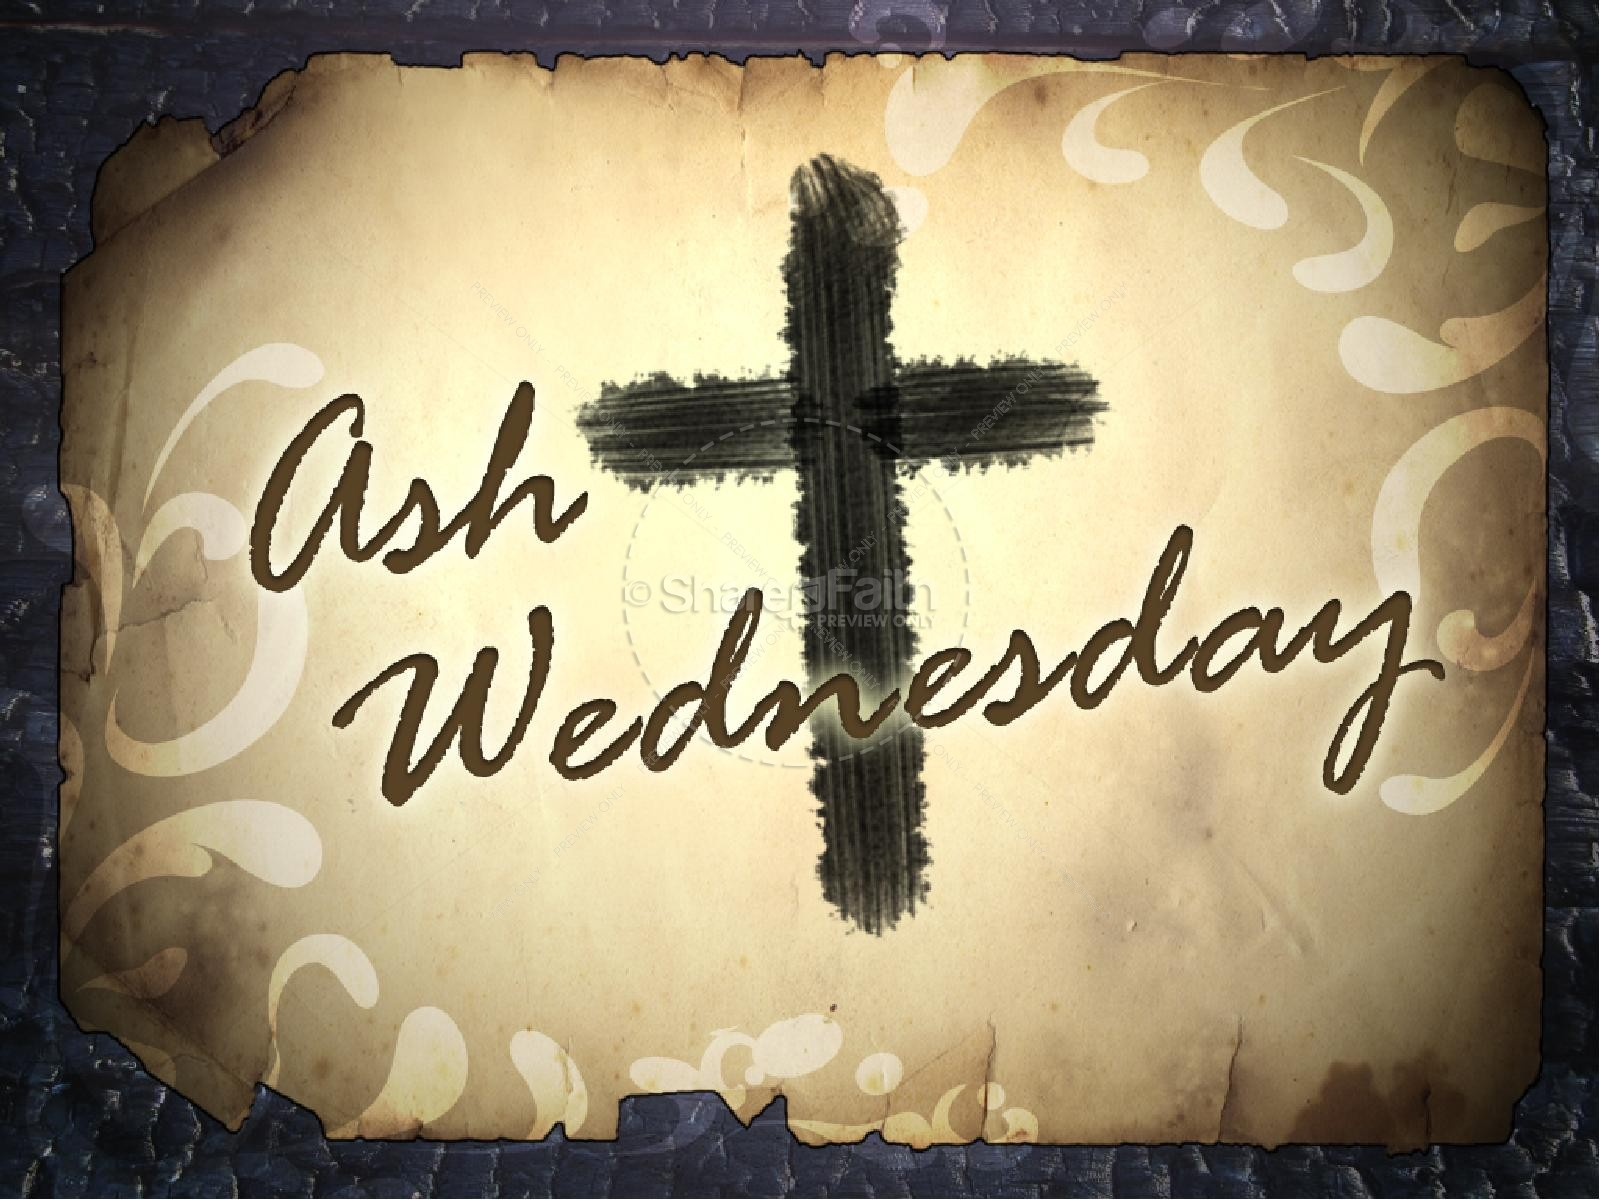 Ash Wednesday with Cross | slide 1